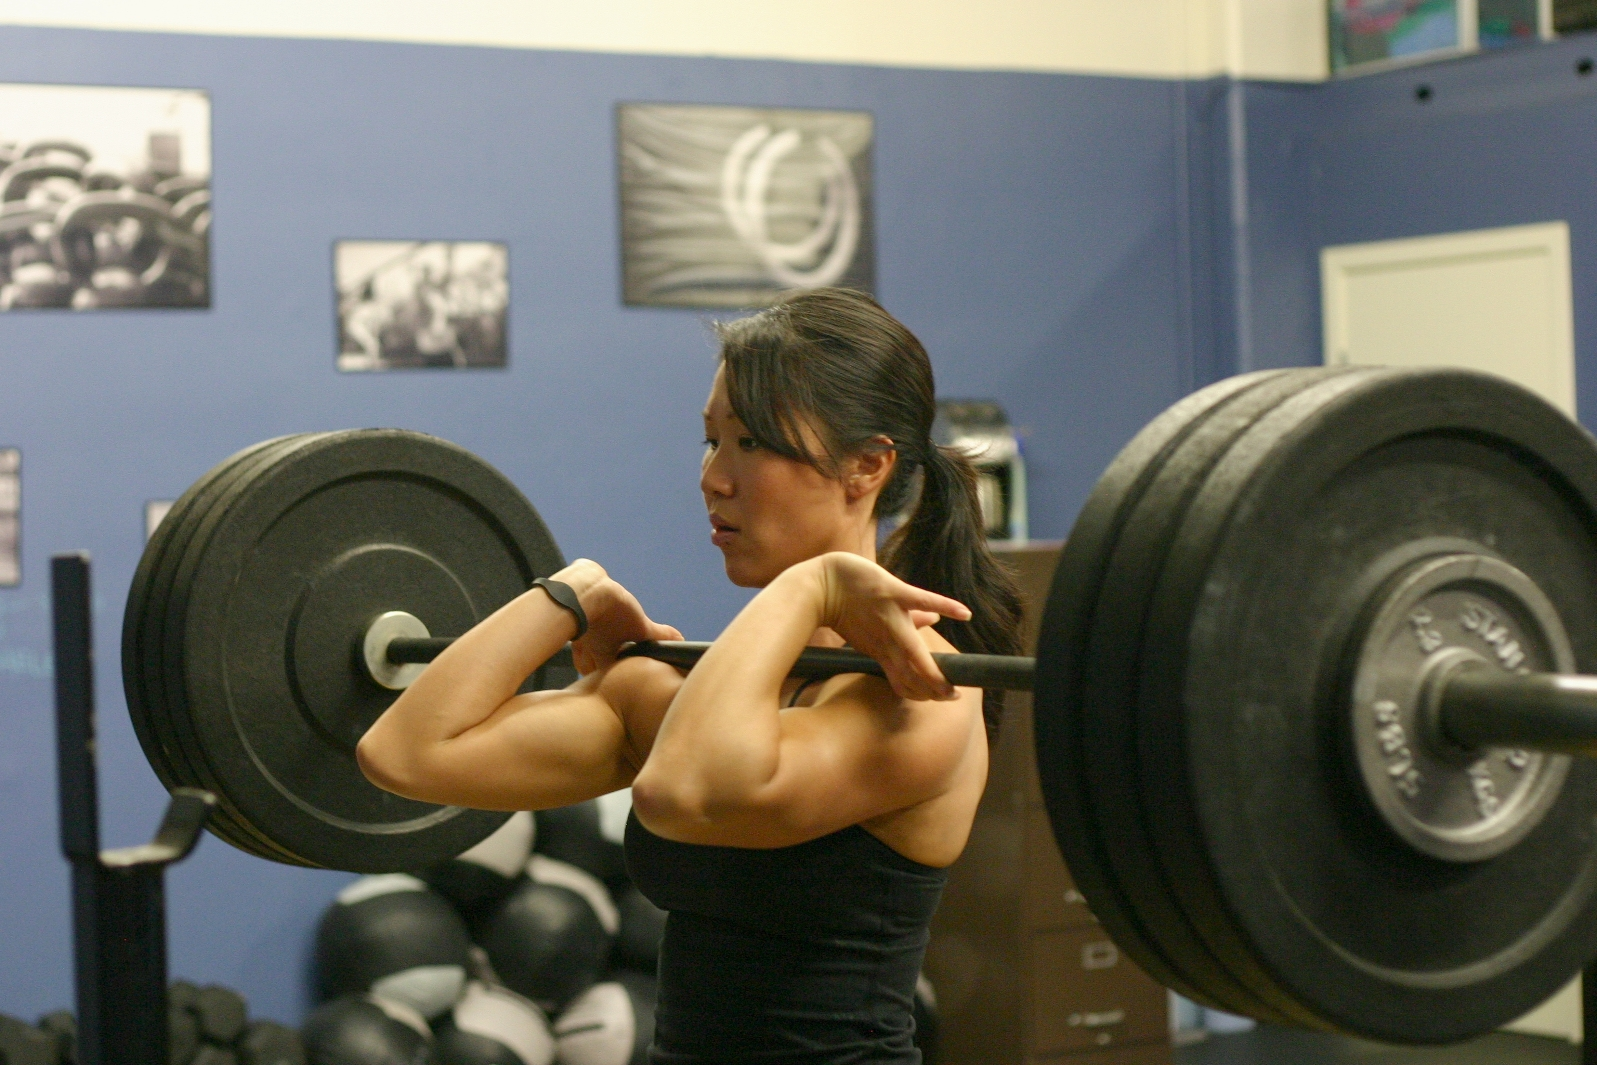 Don T Let Front Squats Hurt Your Wrists Harold Gibbons